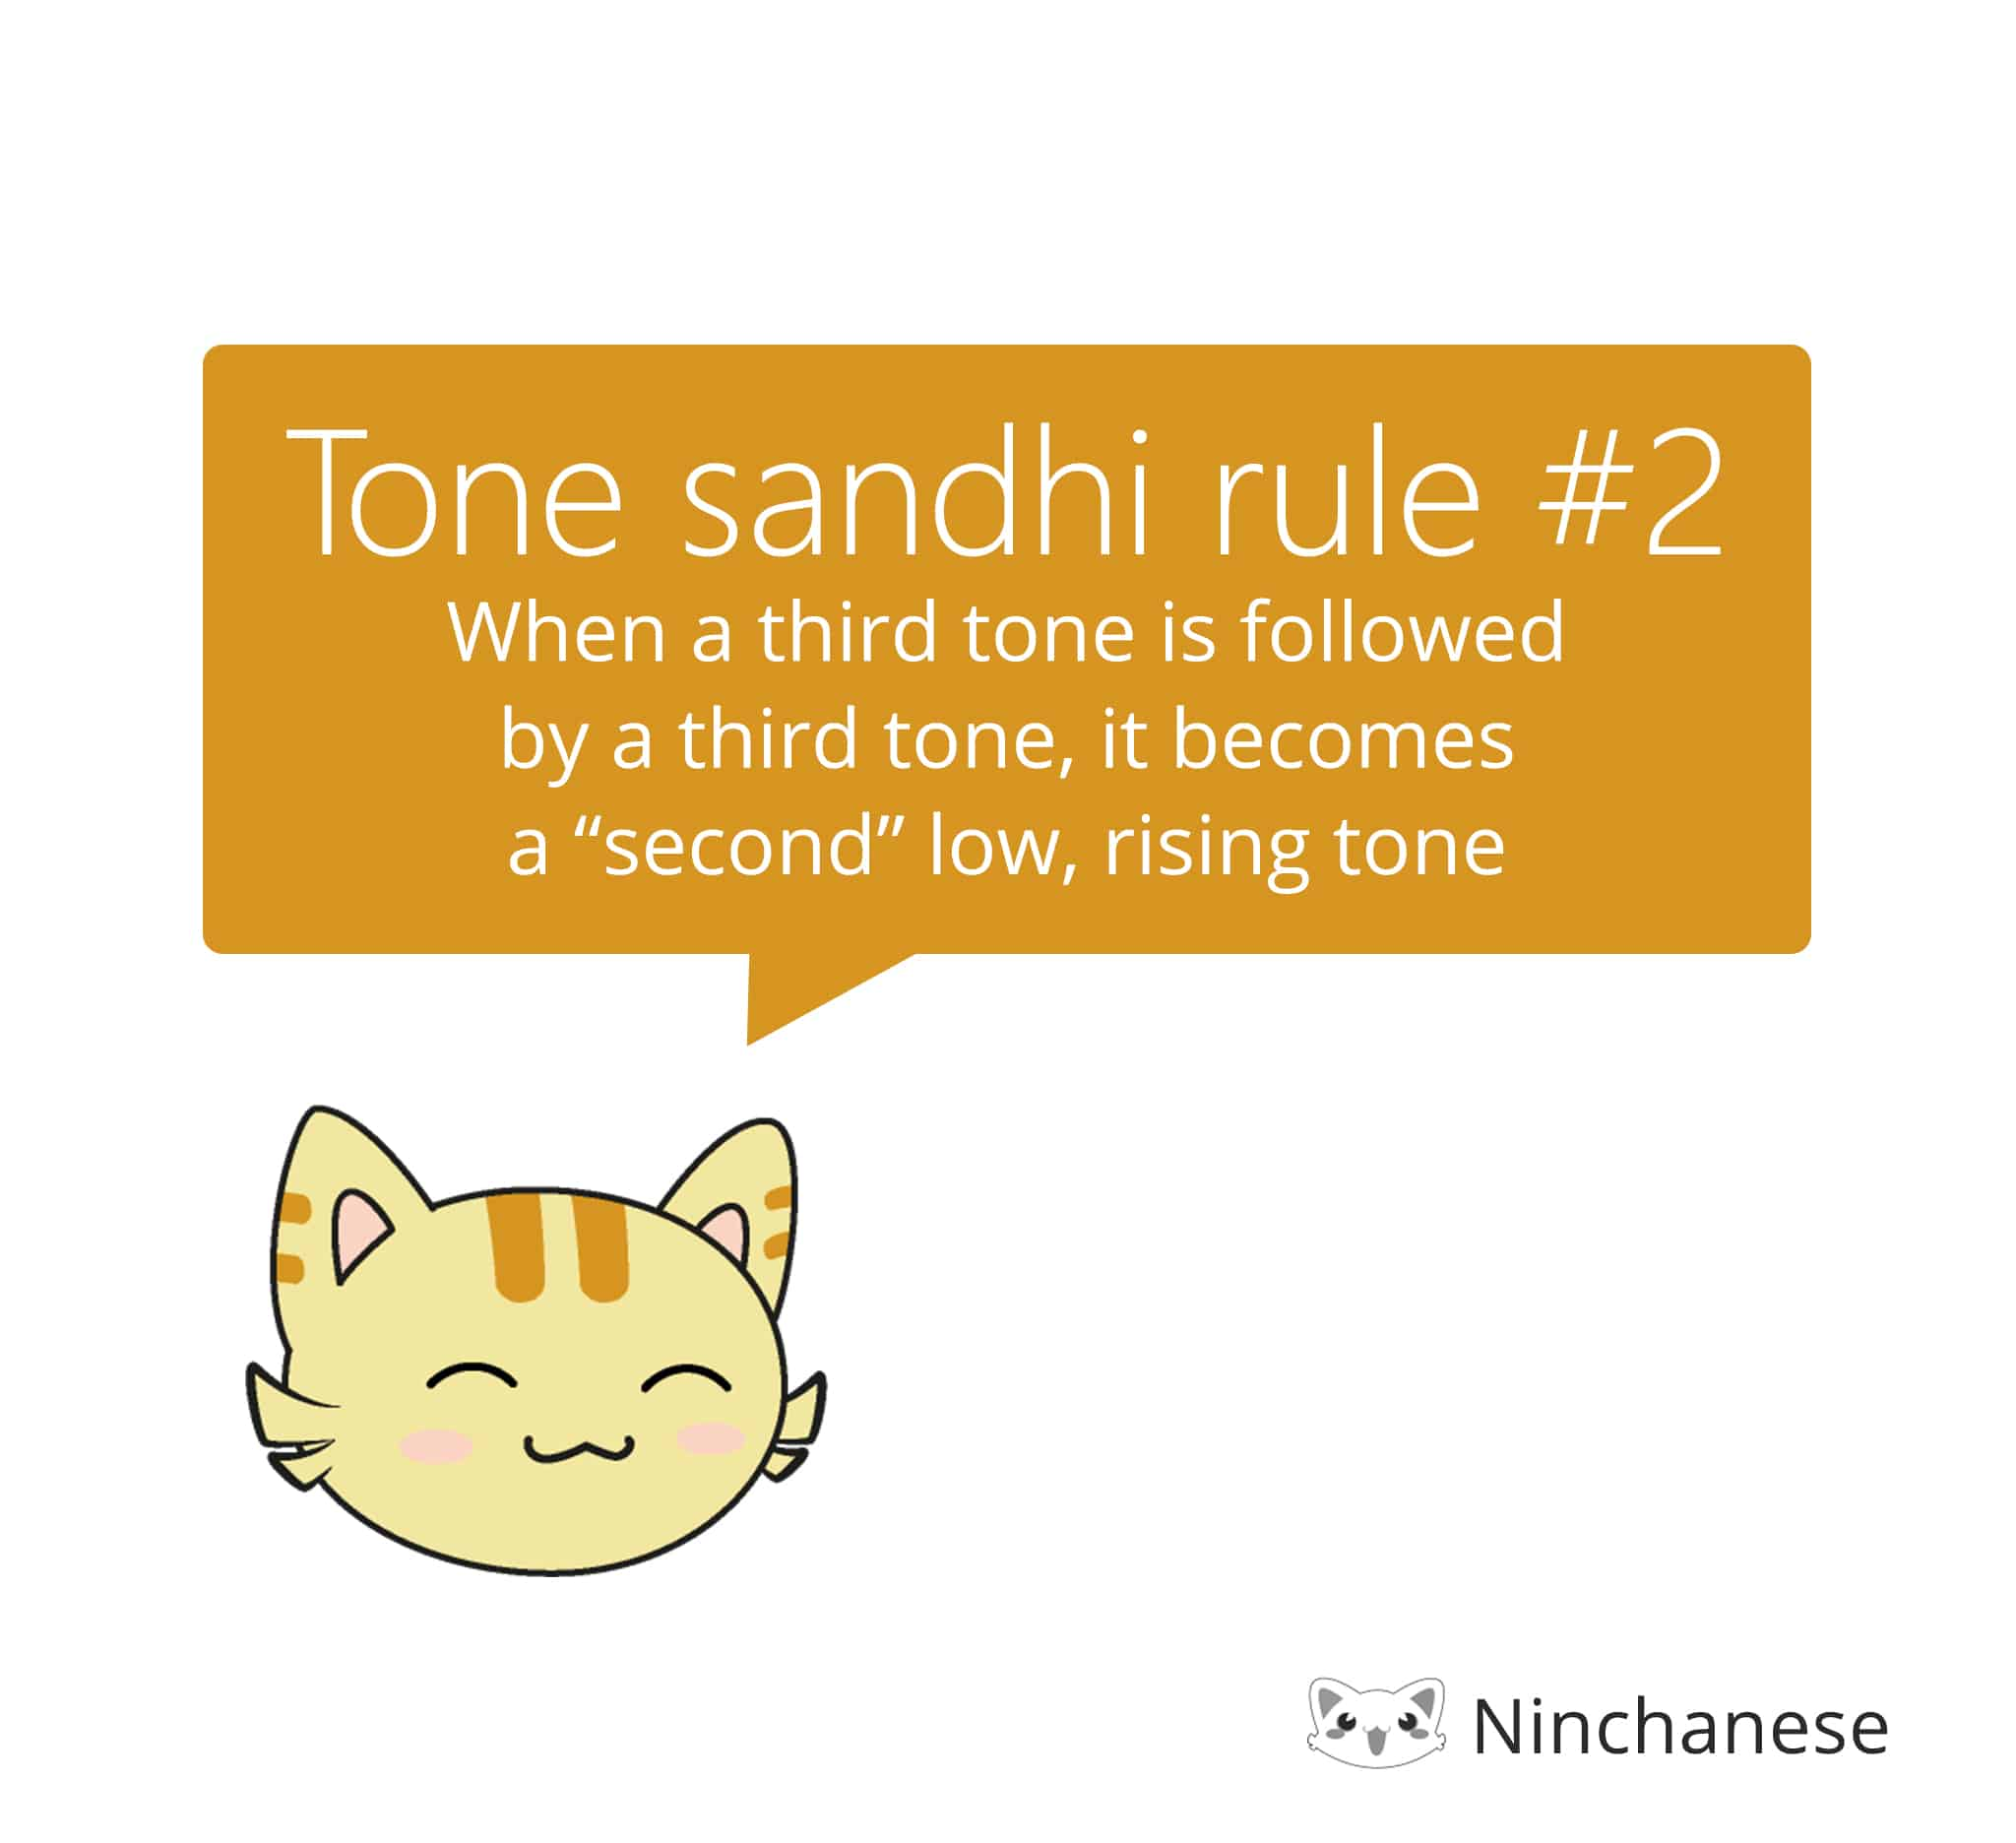 tone sandhi rule for two third tones in a row in mandarin